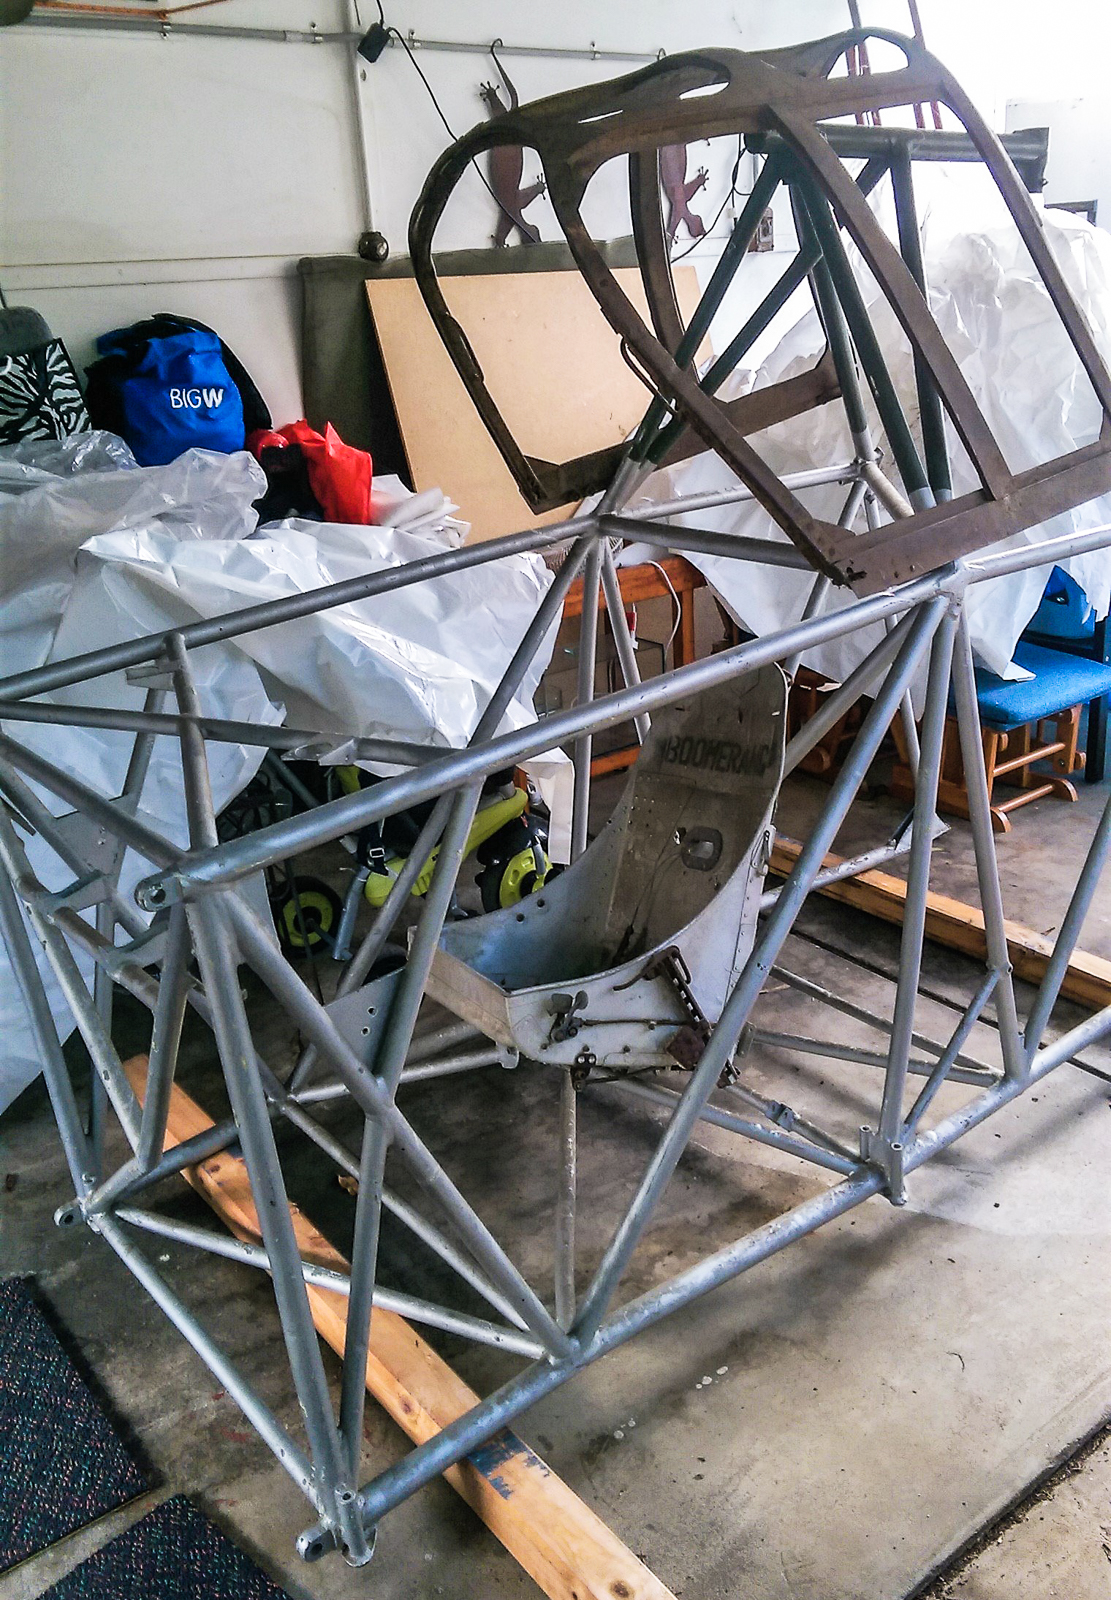 The statically restored fuselage frame for A46-3 sitting in Rick Anderson's garage. Note the unrestored cockpit canopy and pilot's seat in the image. (photo by Rick Anderson)